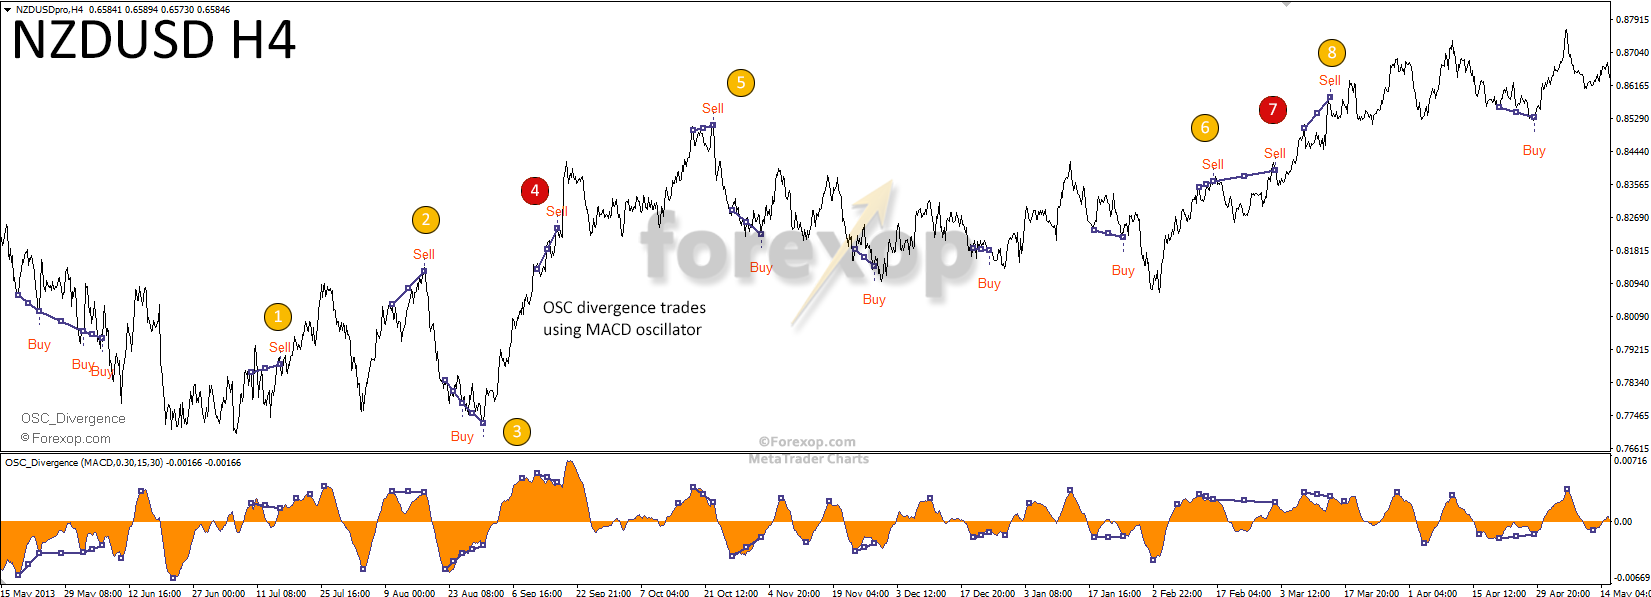 Figure 6: Divergence on NZDUSD showing true and false positives.